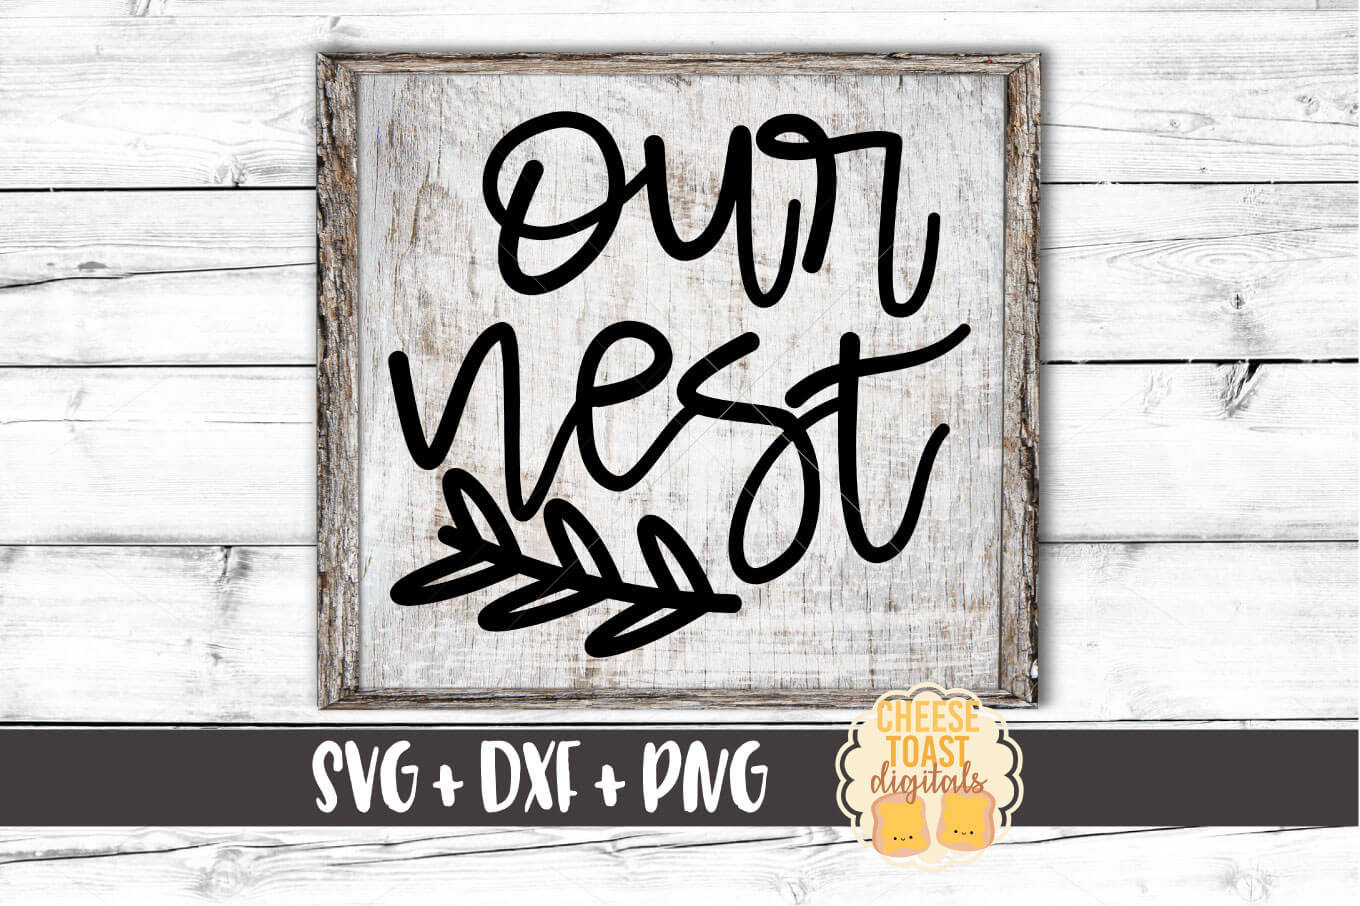 Our Nest - SVG, PNG, DXF